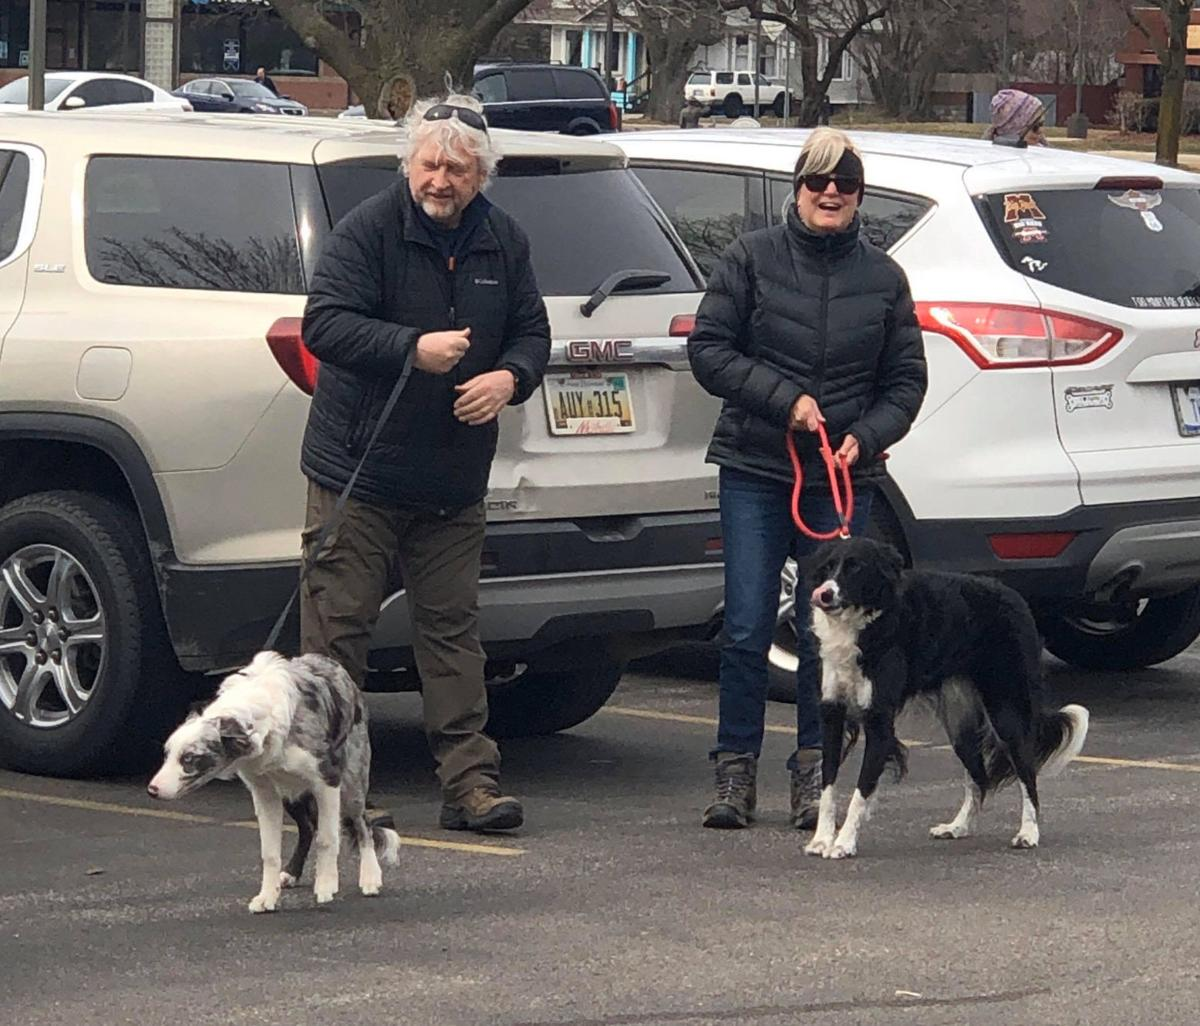 Doggies in the Window' cheer up nursing home residents | Local News |  grandhaventribune.com